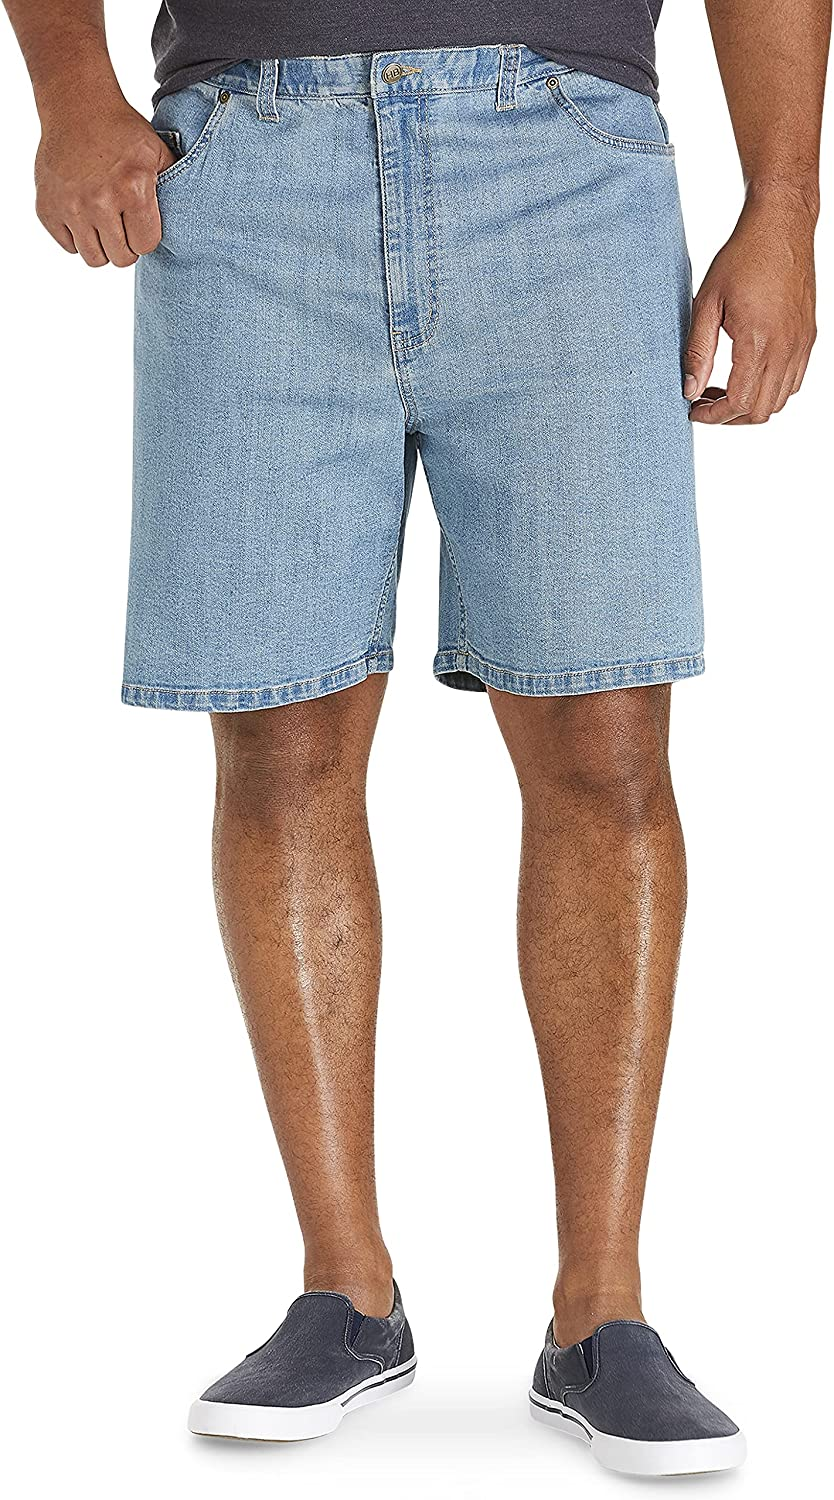 Harbor Bay by DXL Big Save money and Shorts Continuous New arrival Denim Tall Comfort